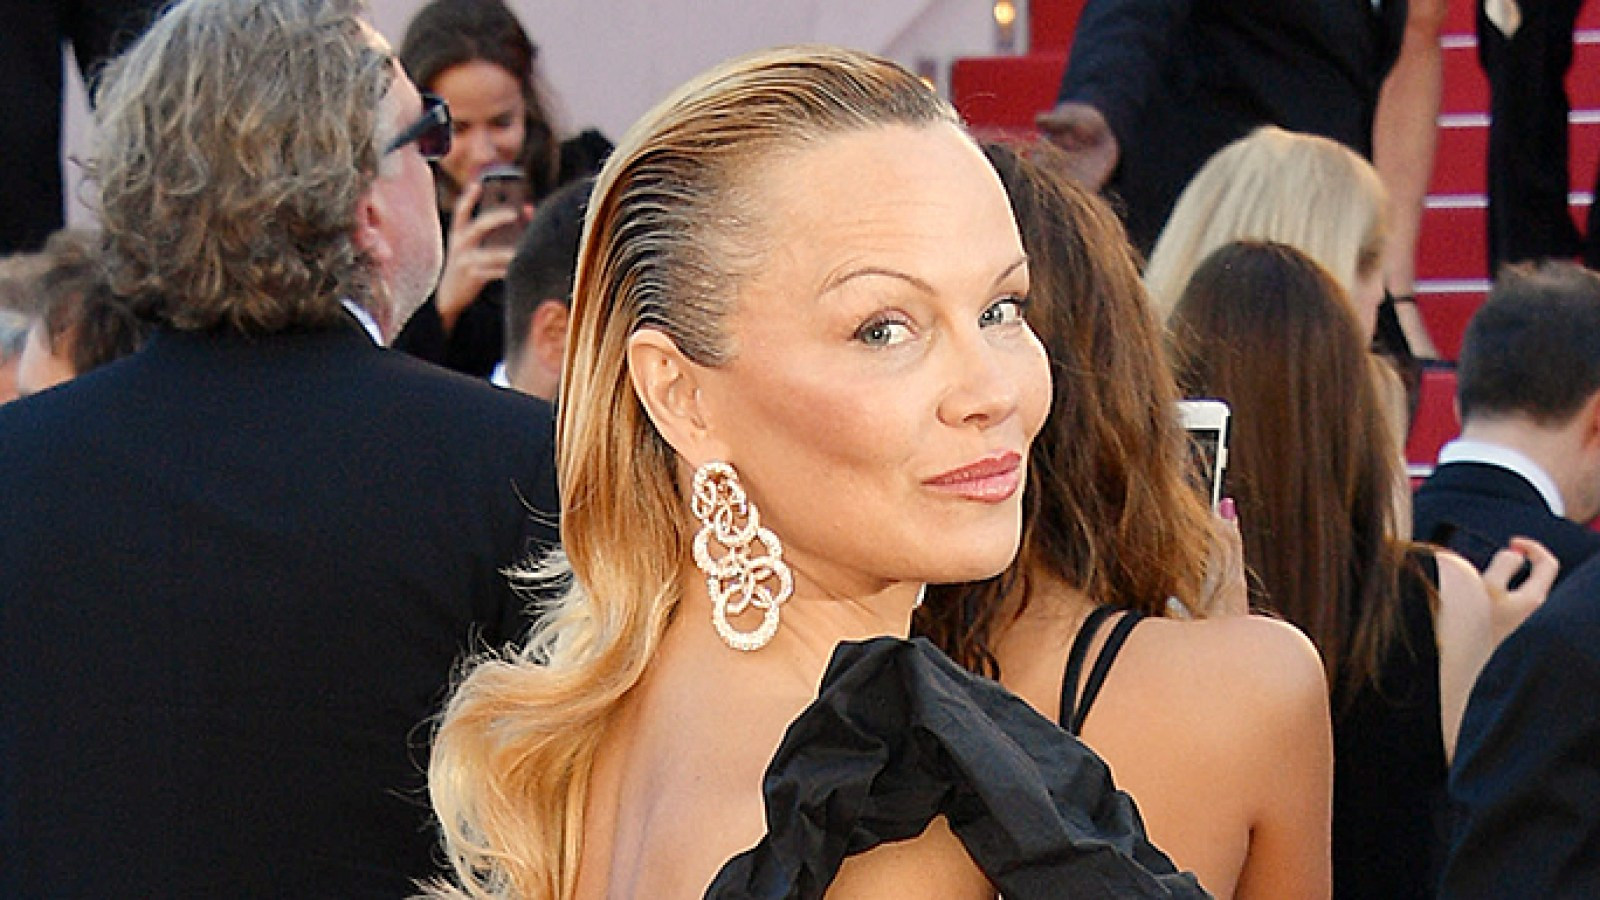 Pamela Anderson Looks Unrecognizable At Cannes Film Festival Photos